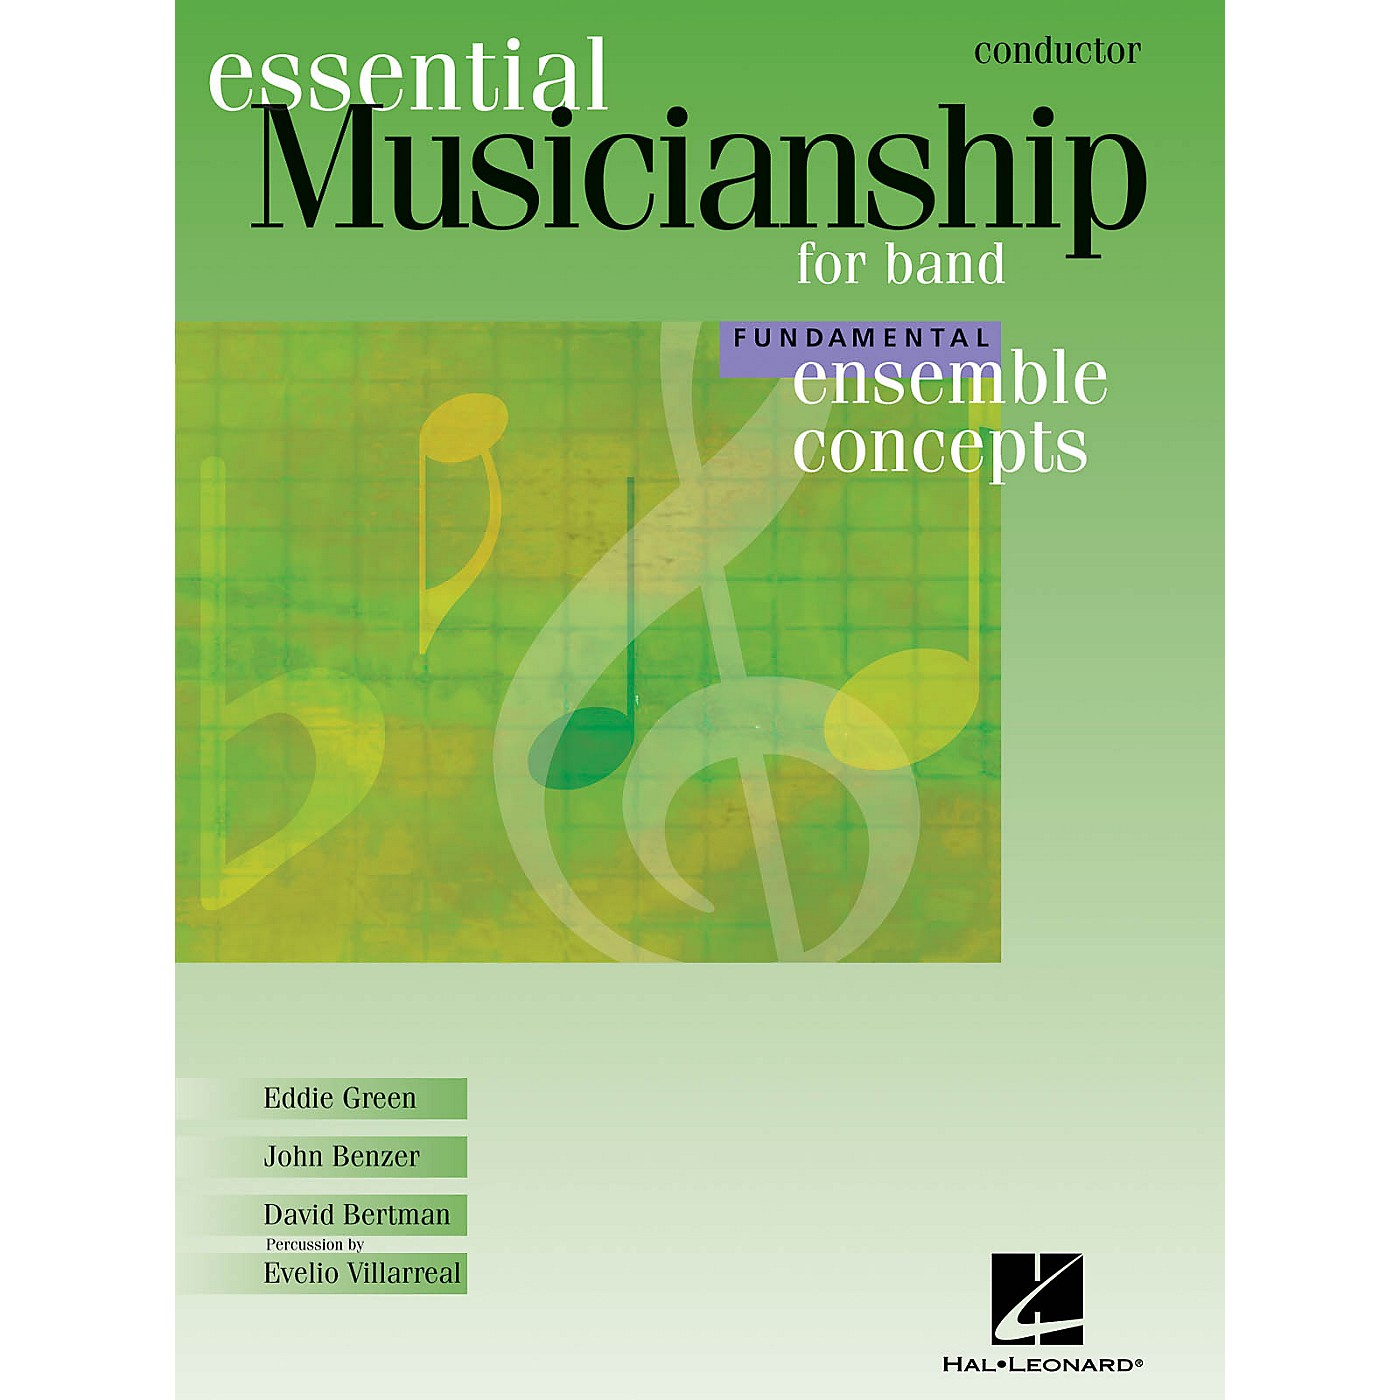 Hal Leonard Essential Musicianship for Band - Ensemble Concepts (Fundamental Level - Conductor) Concert Band thumbnail